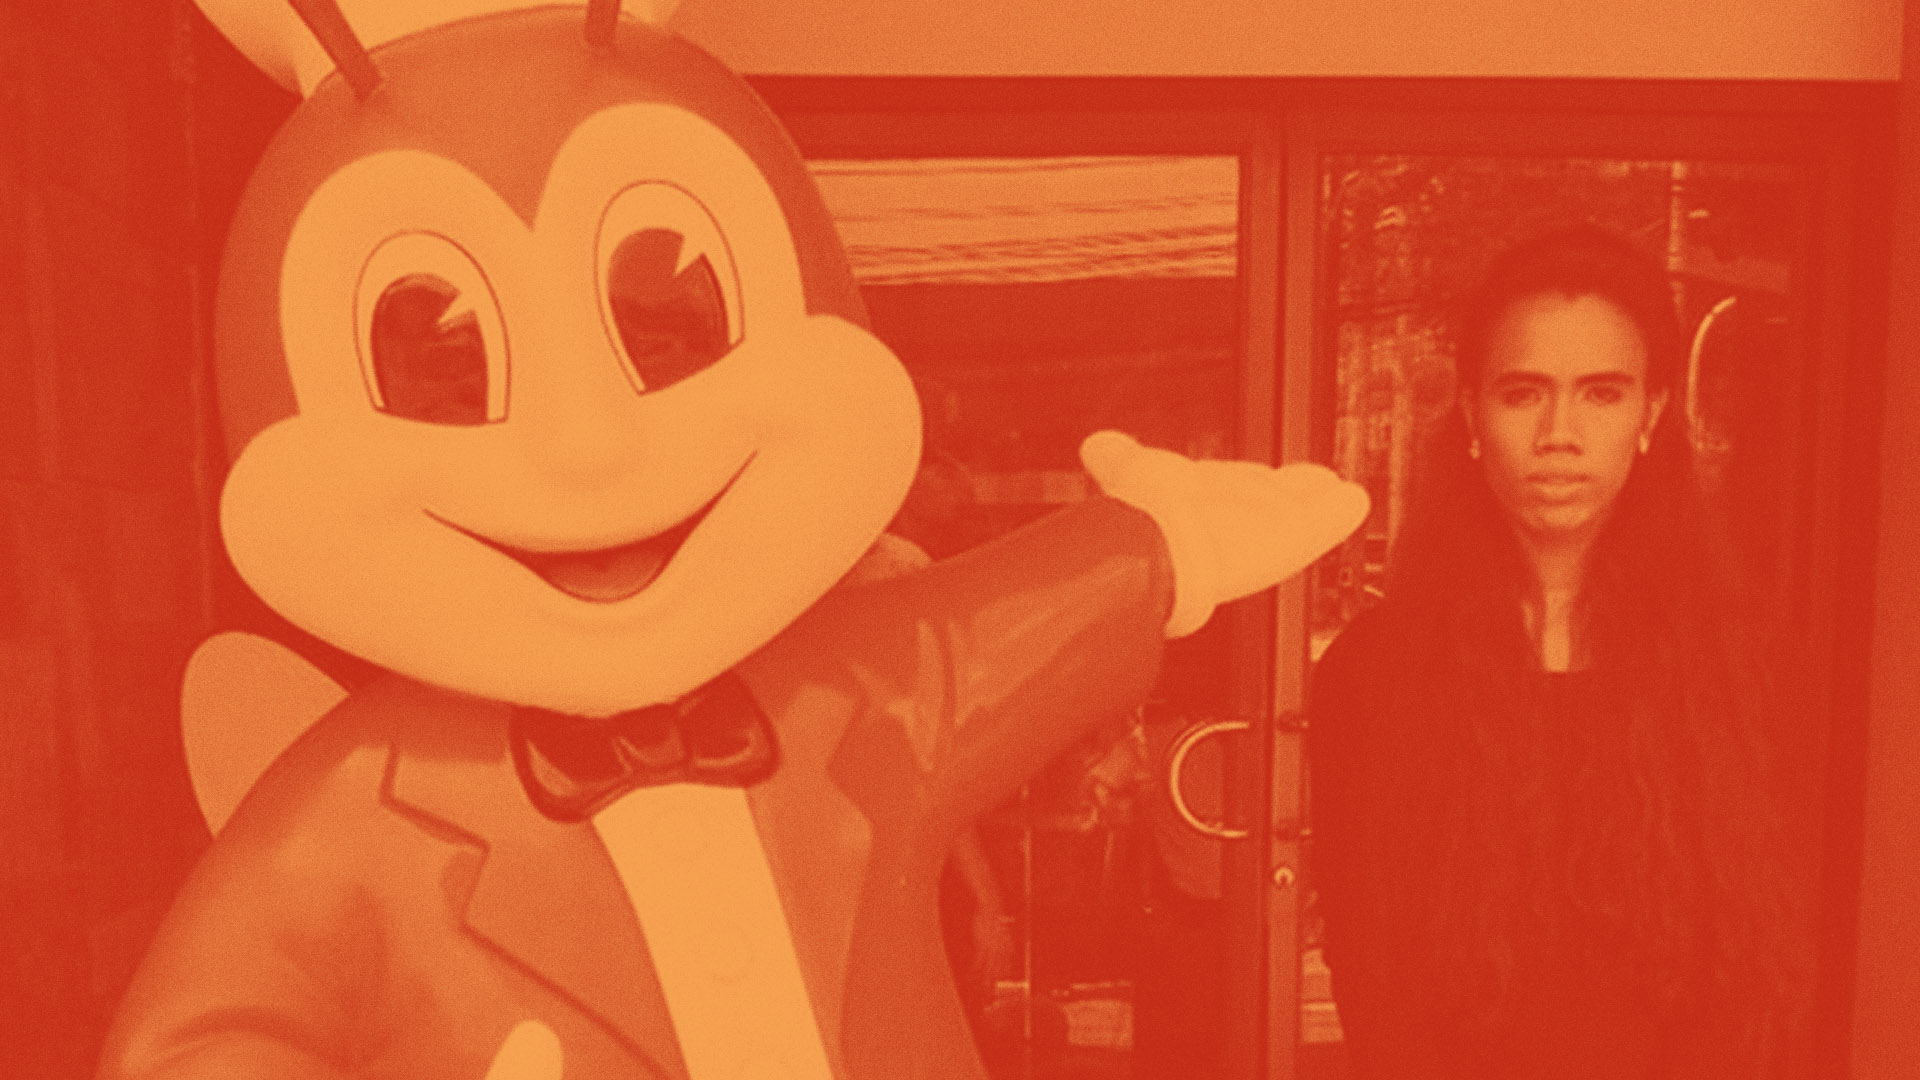 An image of a Jollibee statue pointing at Bunny Carandag, awash in orange.